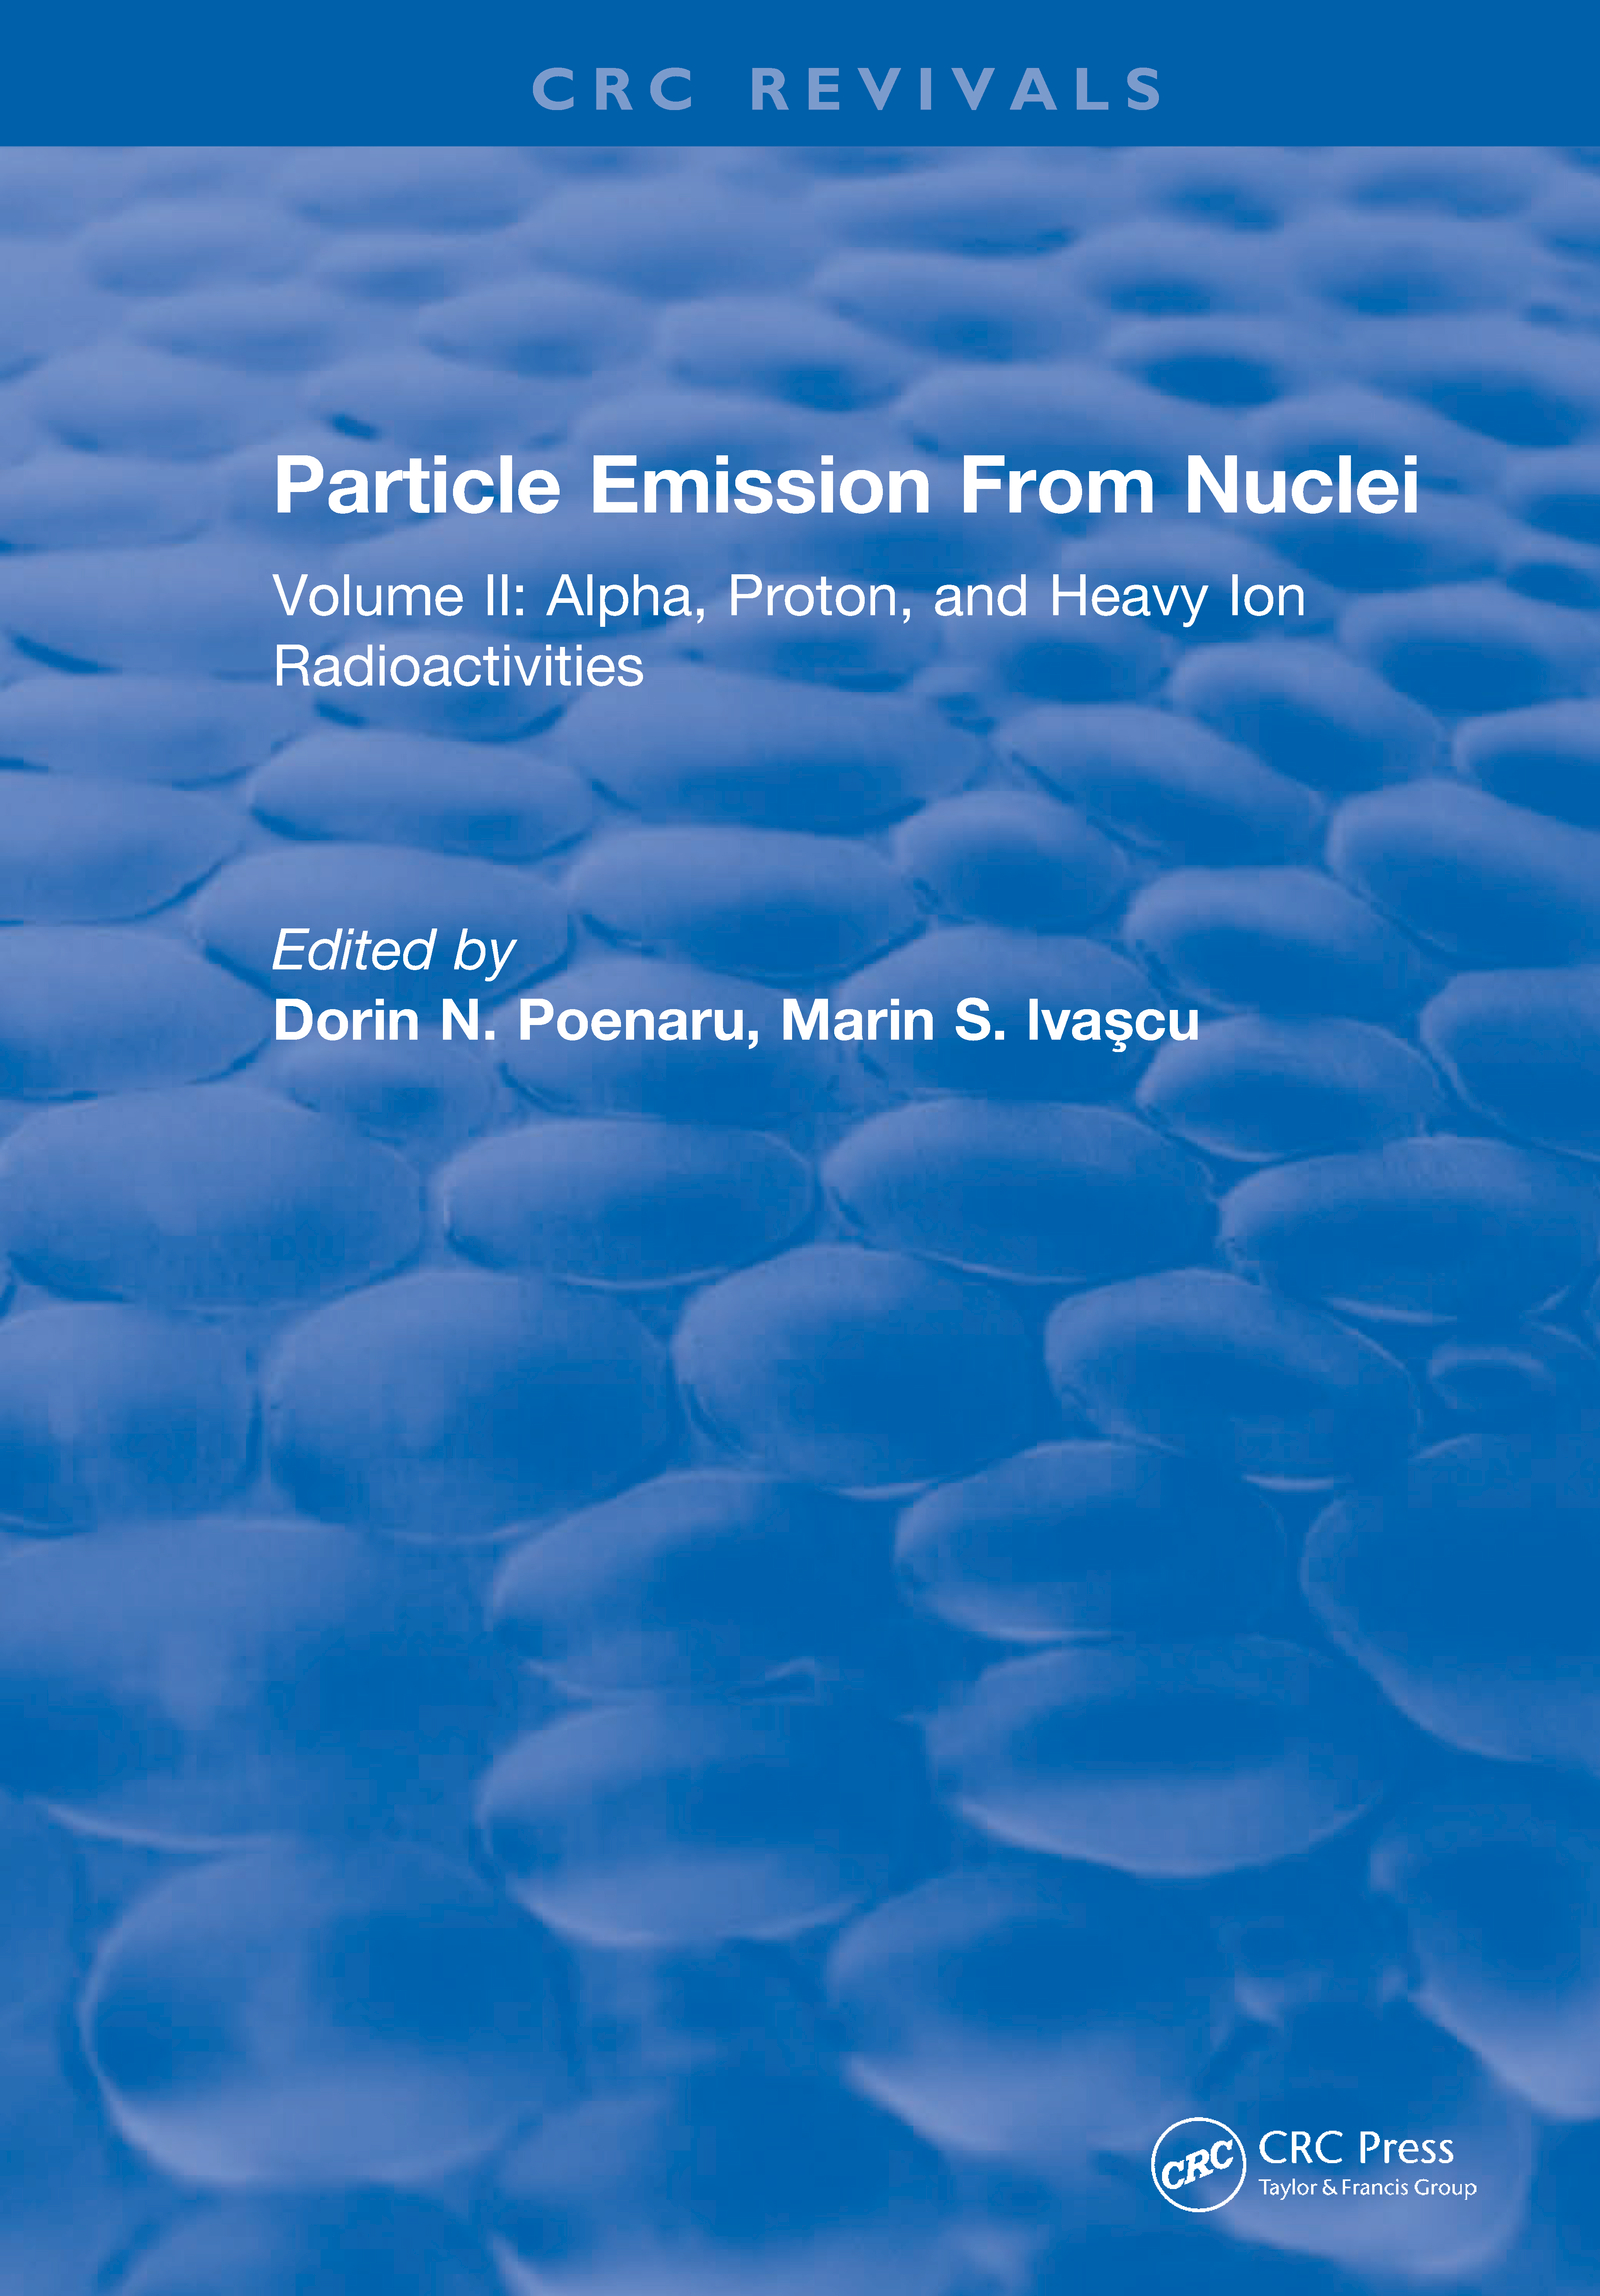 Particle Emission From Nuclei